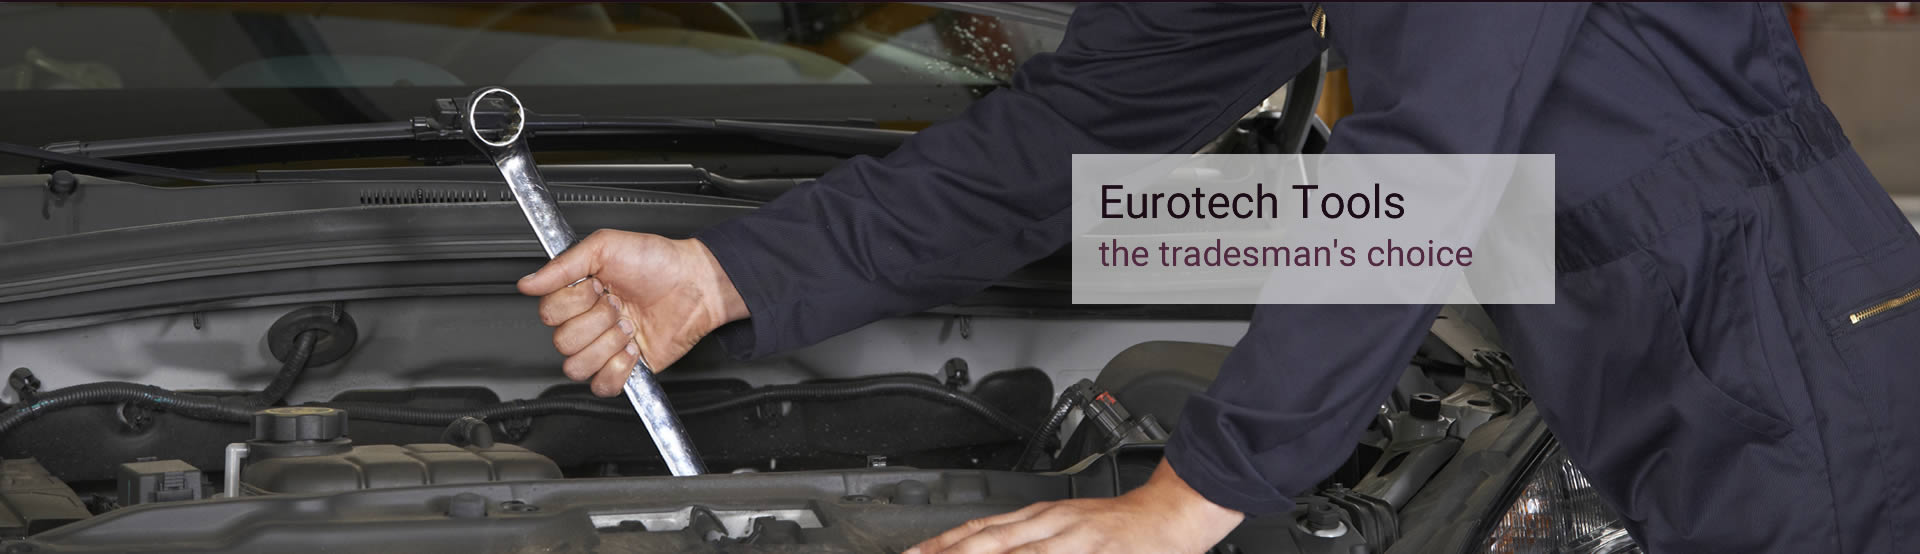 eurotech tools tradesmans choice